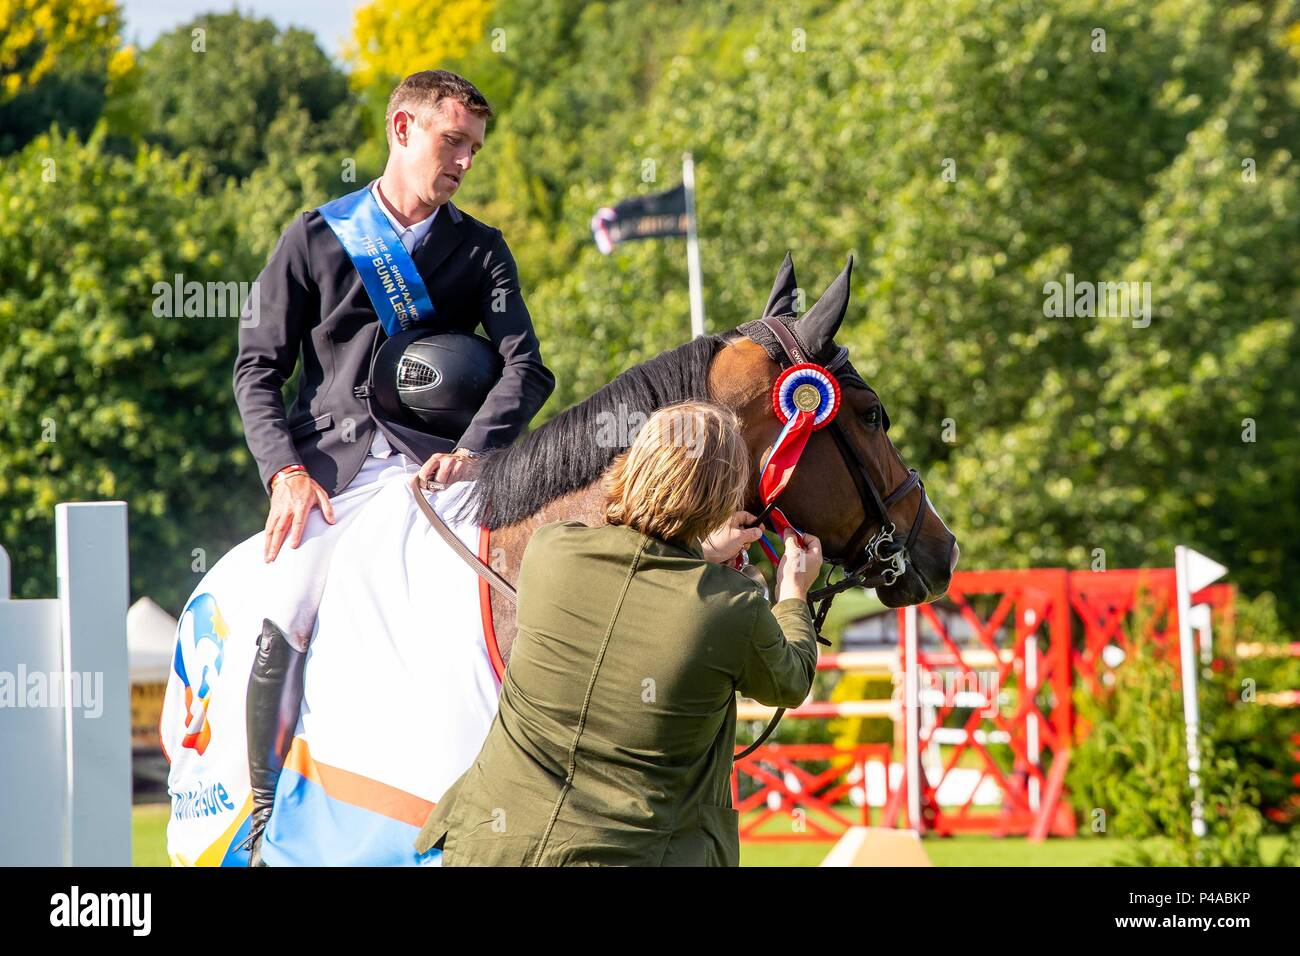 Hickstead, UK. 21st June 2018. Winner. Scott Brash riding Hello Shelby. GBR. The Bunn Lesiure Tankard. CSI4*. The Al Shira'aa Hickstead Derby Meeting. Showjumping. The All England Jumping Course. Hickstead. West Sussex. UK. Day 2. 21/06/2018. Credit: Sport In Pictures/Alamy Live News - Stock Image